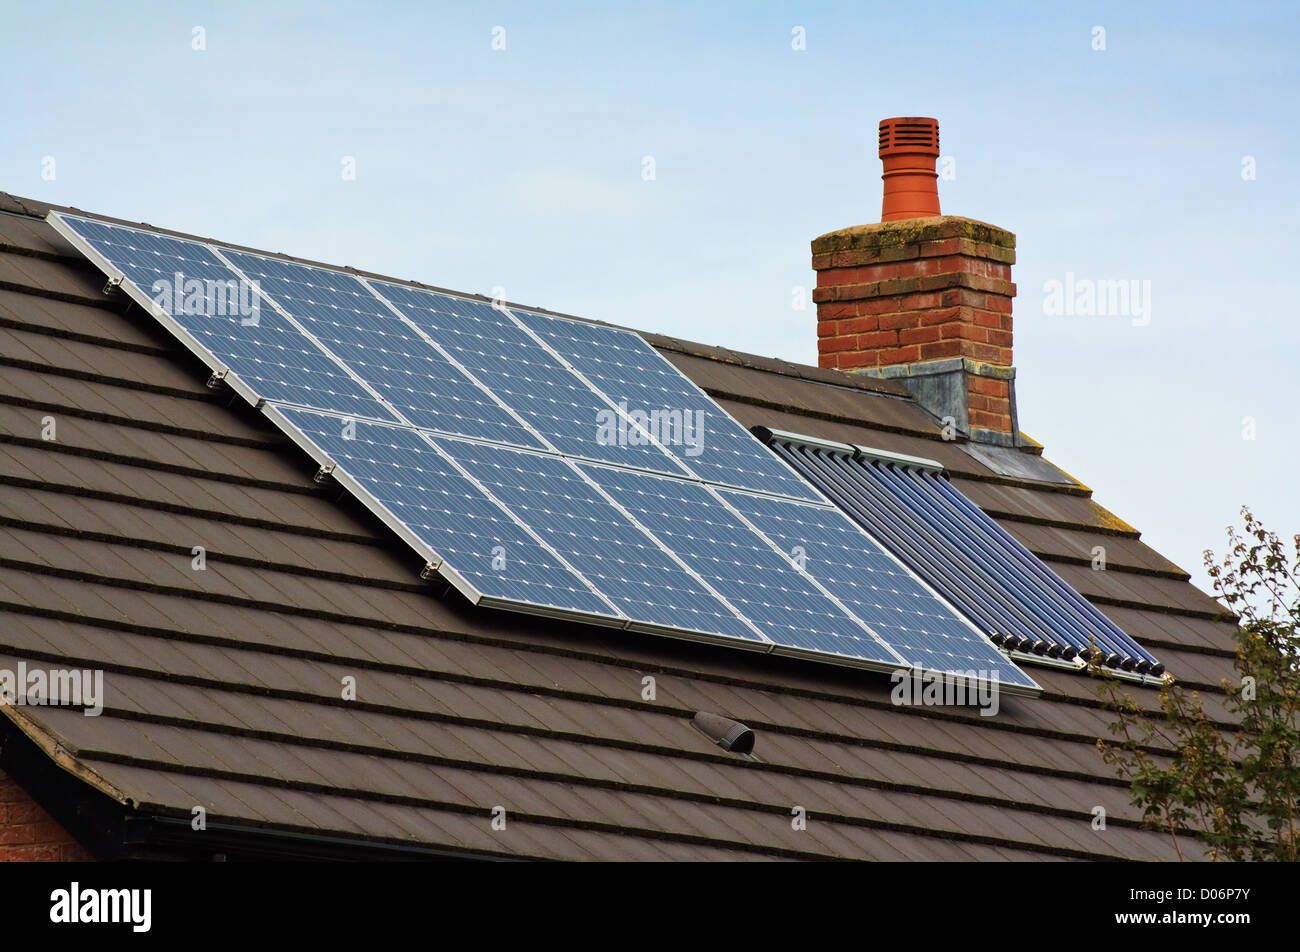 Green Tiled Roof Stock Photos & Green Tiled Roof Stock Images - Alamy